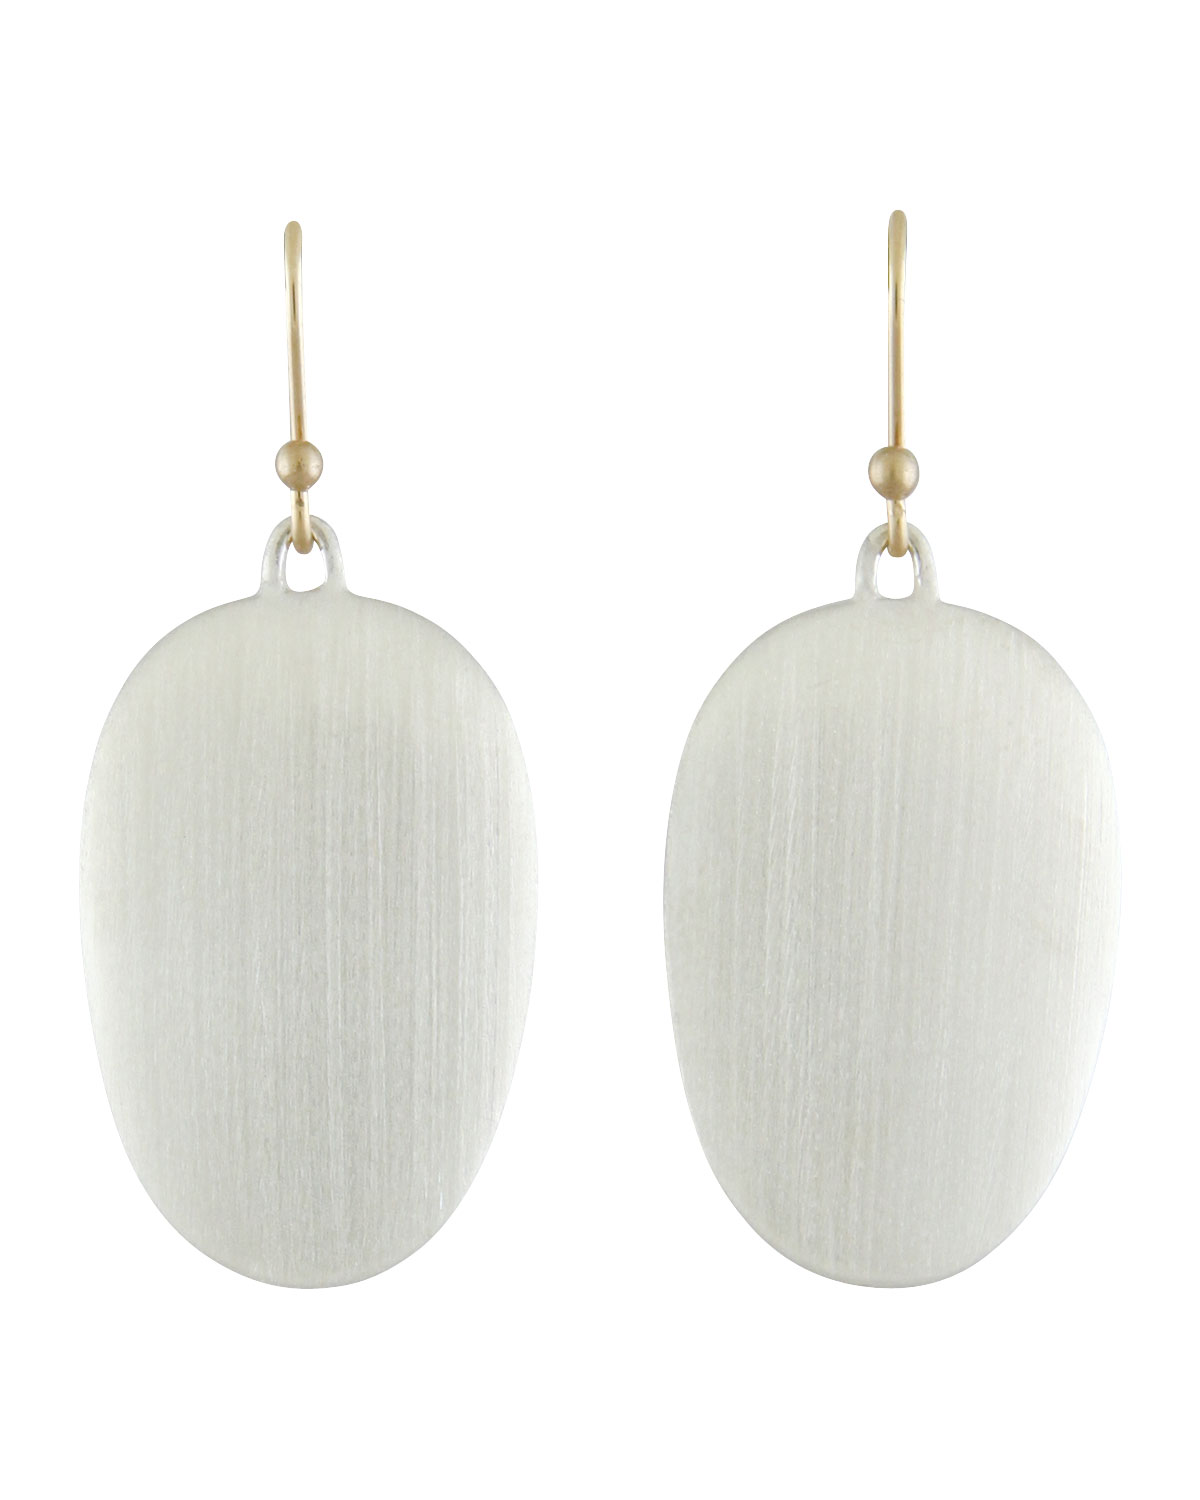 TED MUEHLING LARGE BRUSHED SILVER CHIP EARRINGS